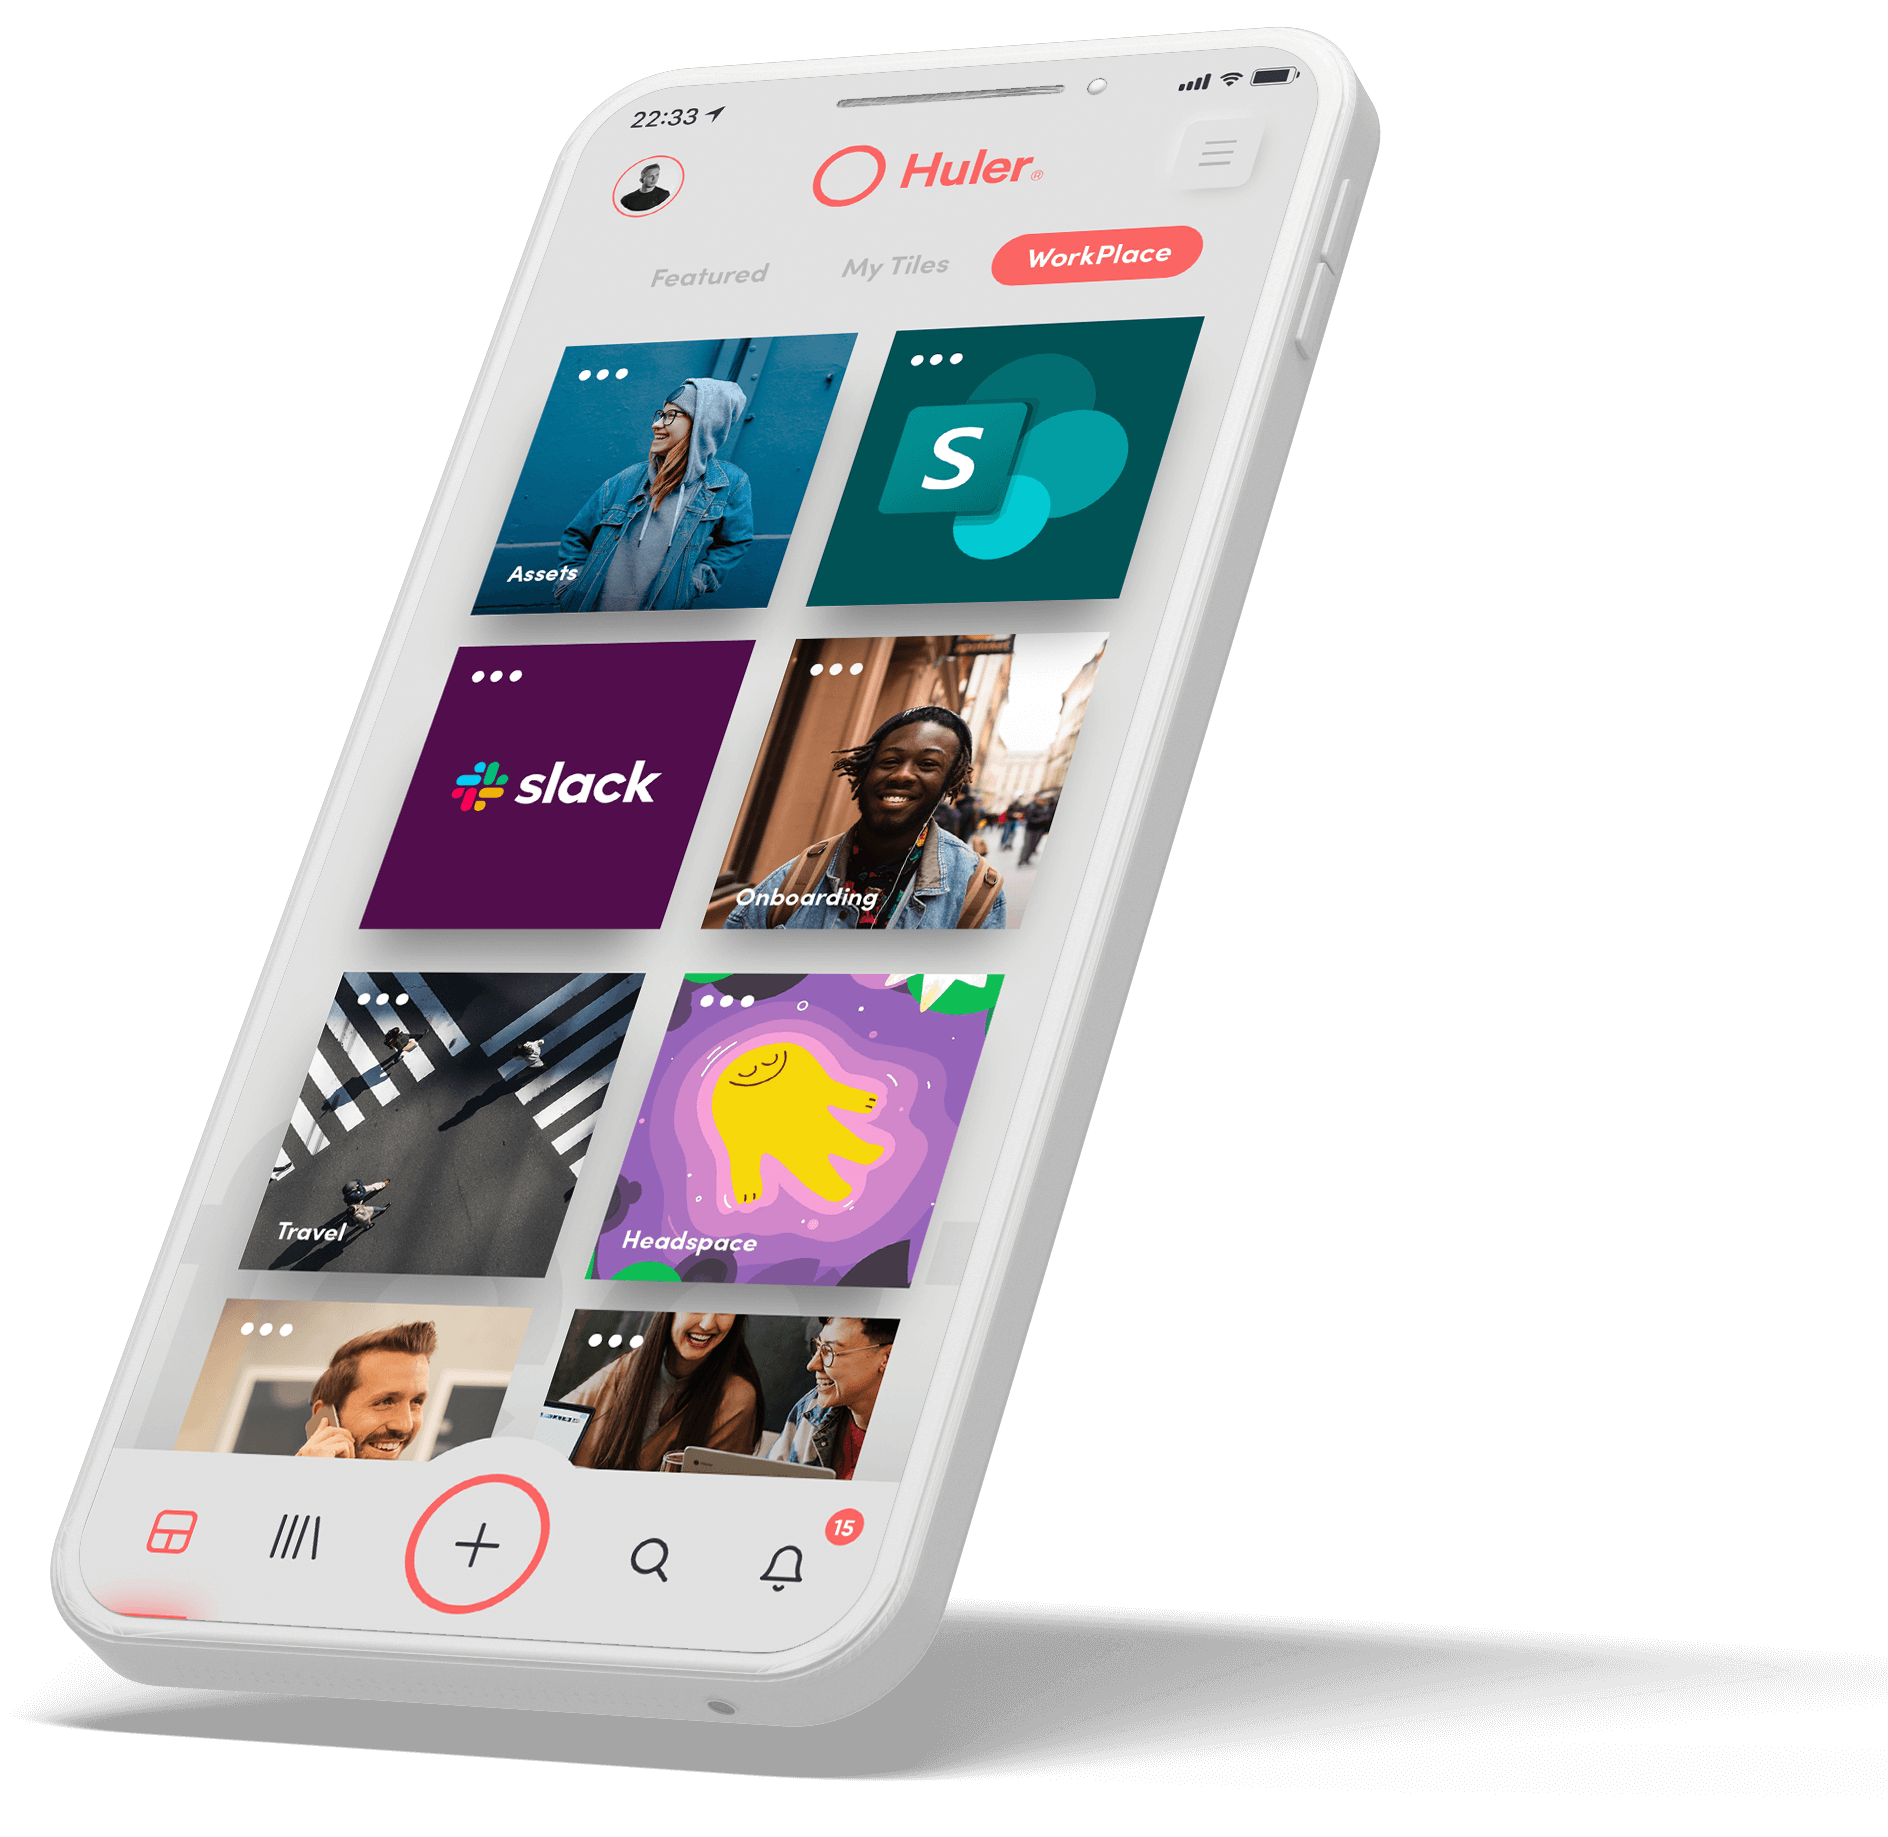 A graphic design of a white smartphone displaying the HulerHub Workplace with tiles for Slack, Sharepoint, Headspace, Travel and Onboarding.